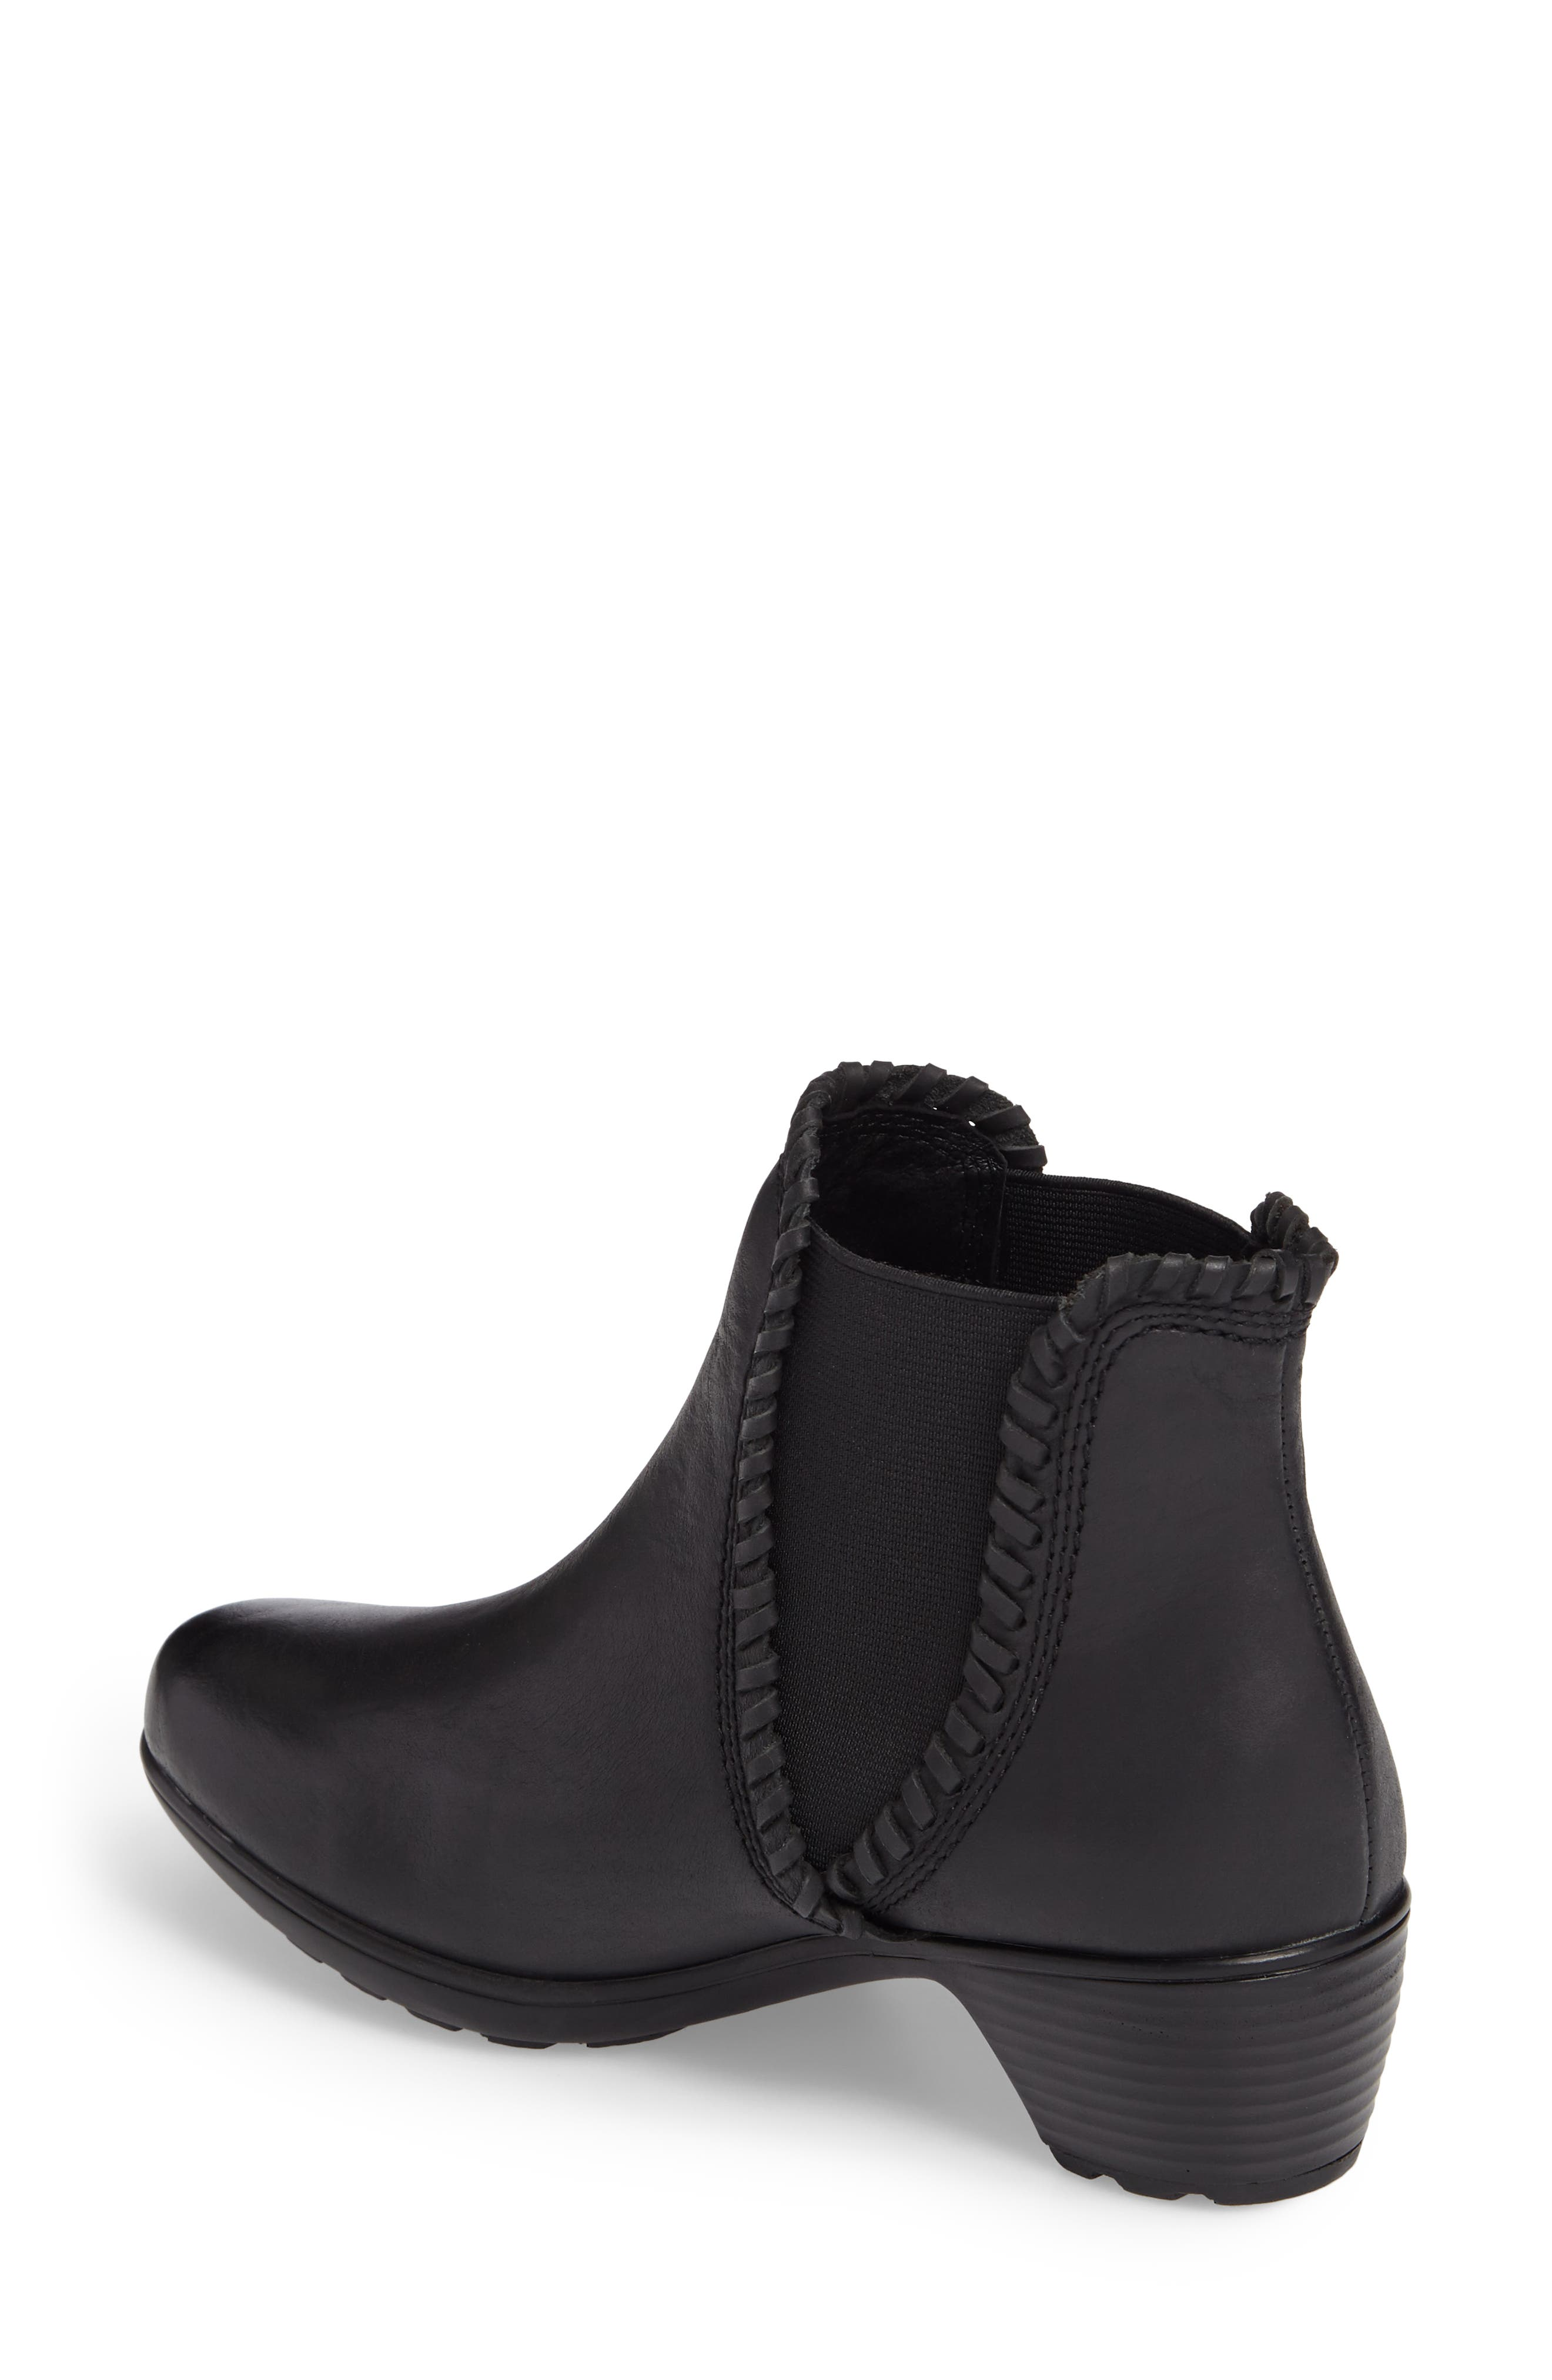 Banja 16 Water Resistant Bootie,                             Alternate thumbnail 2, color,                             003